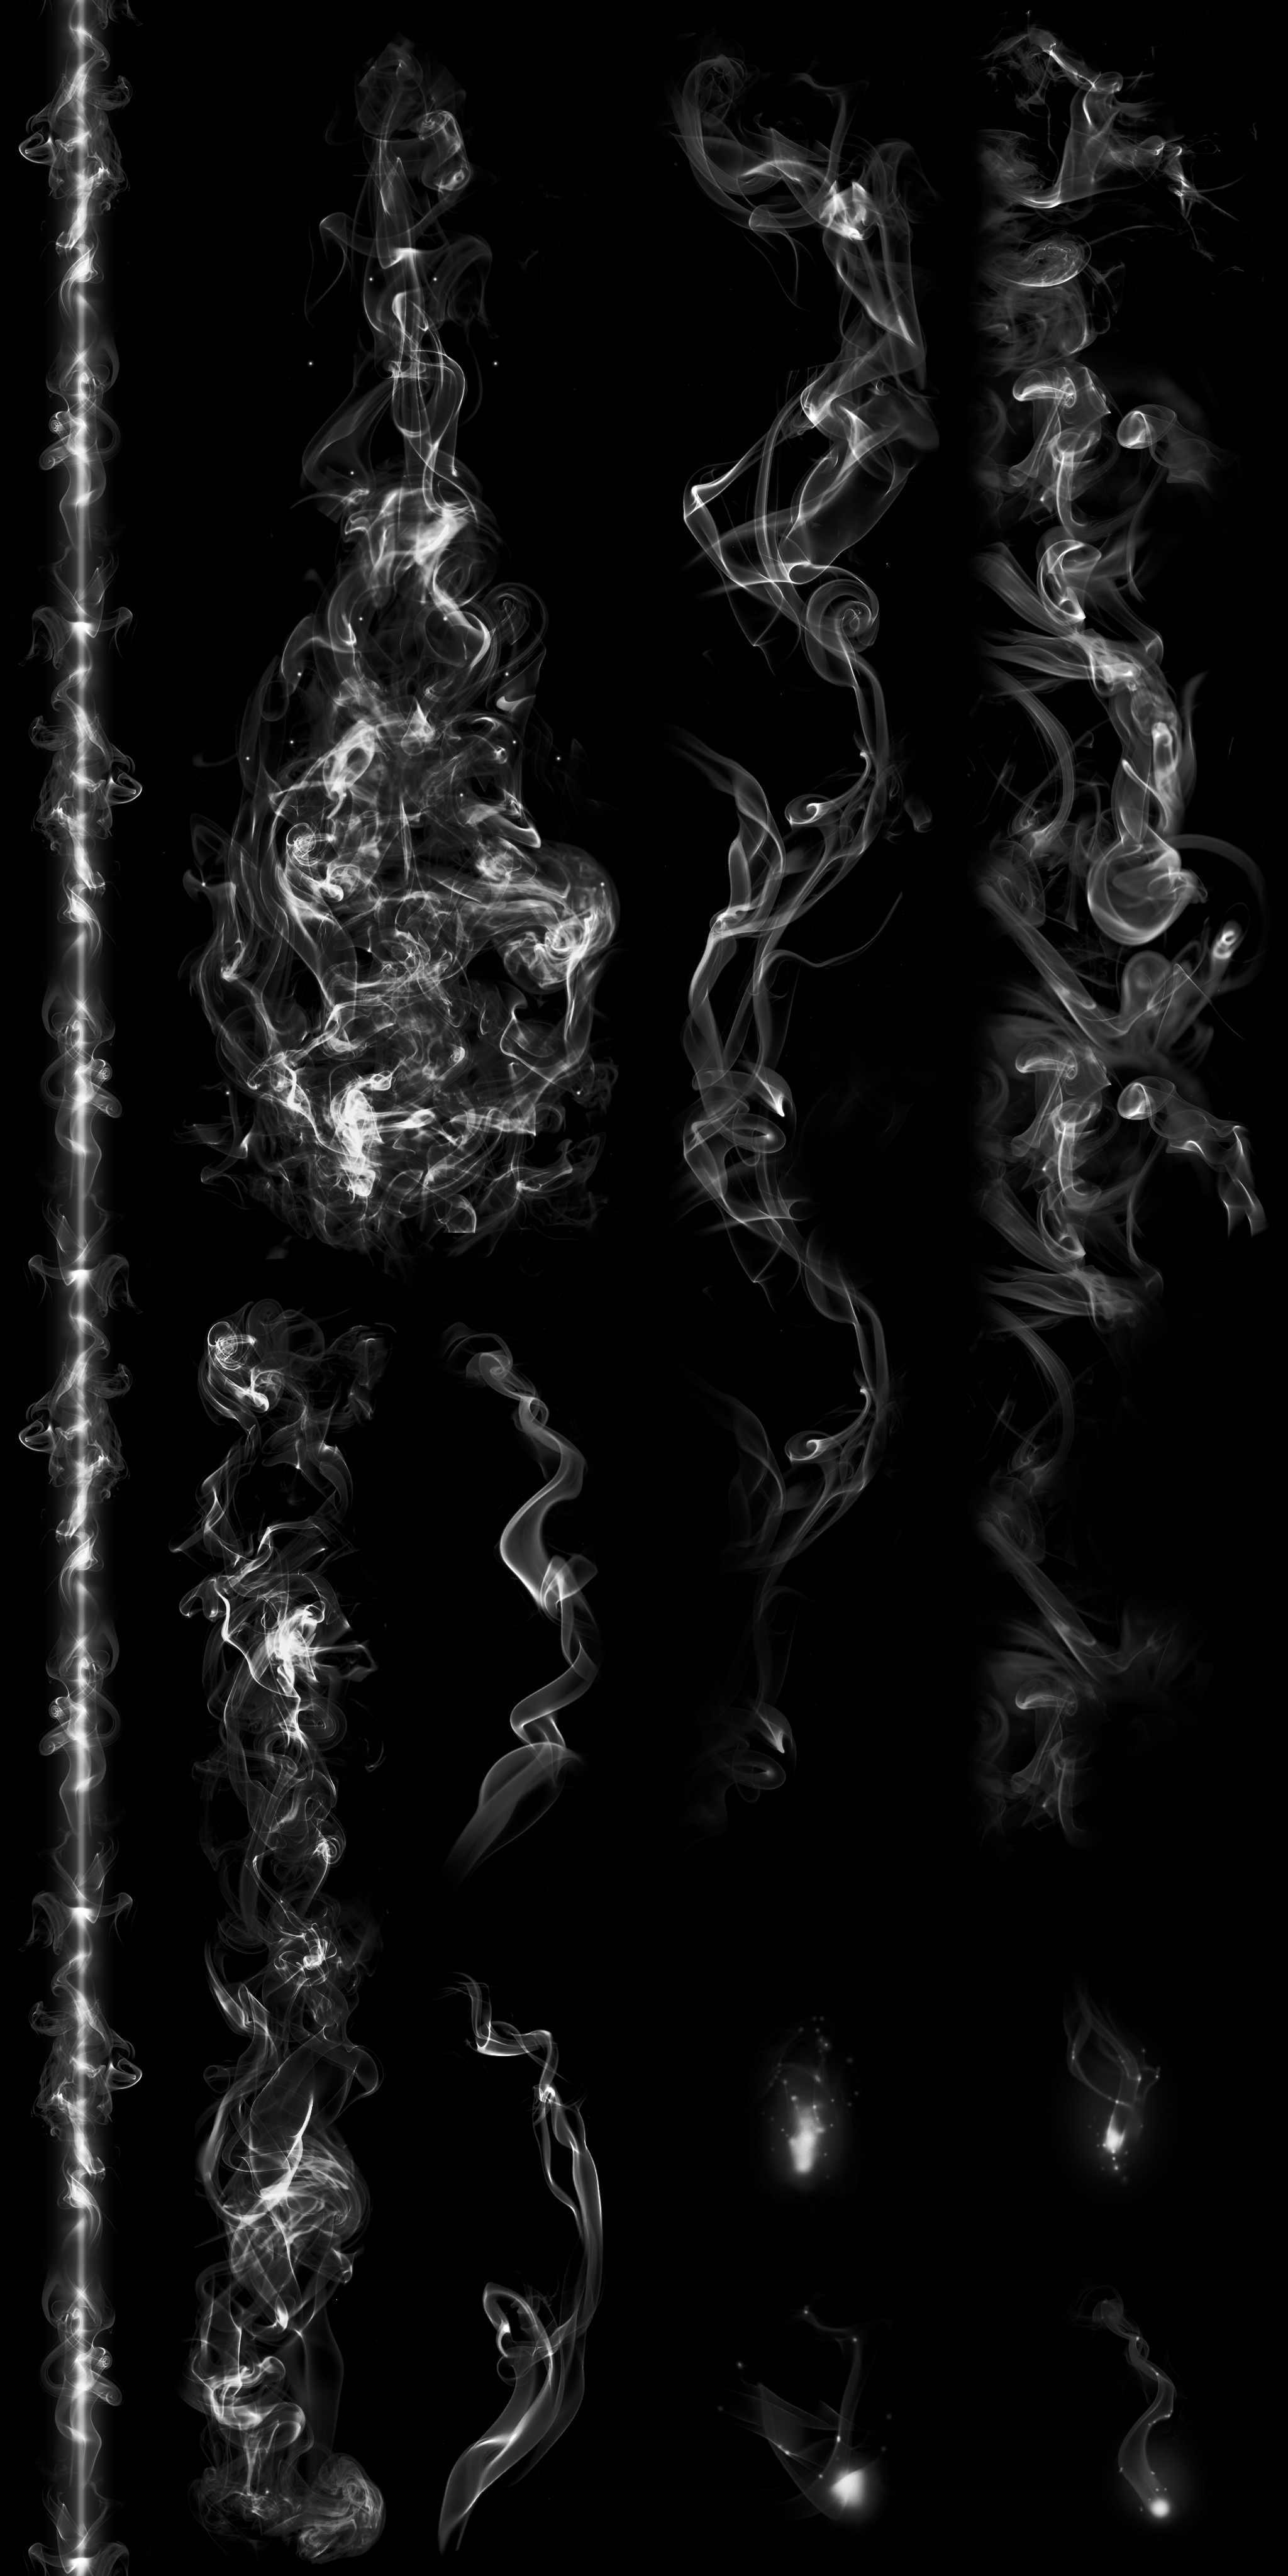 Texture map for the glowing elements of the staff